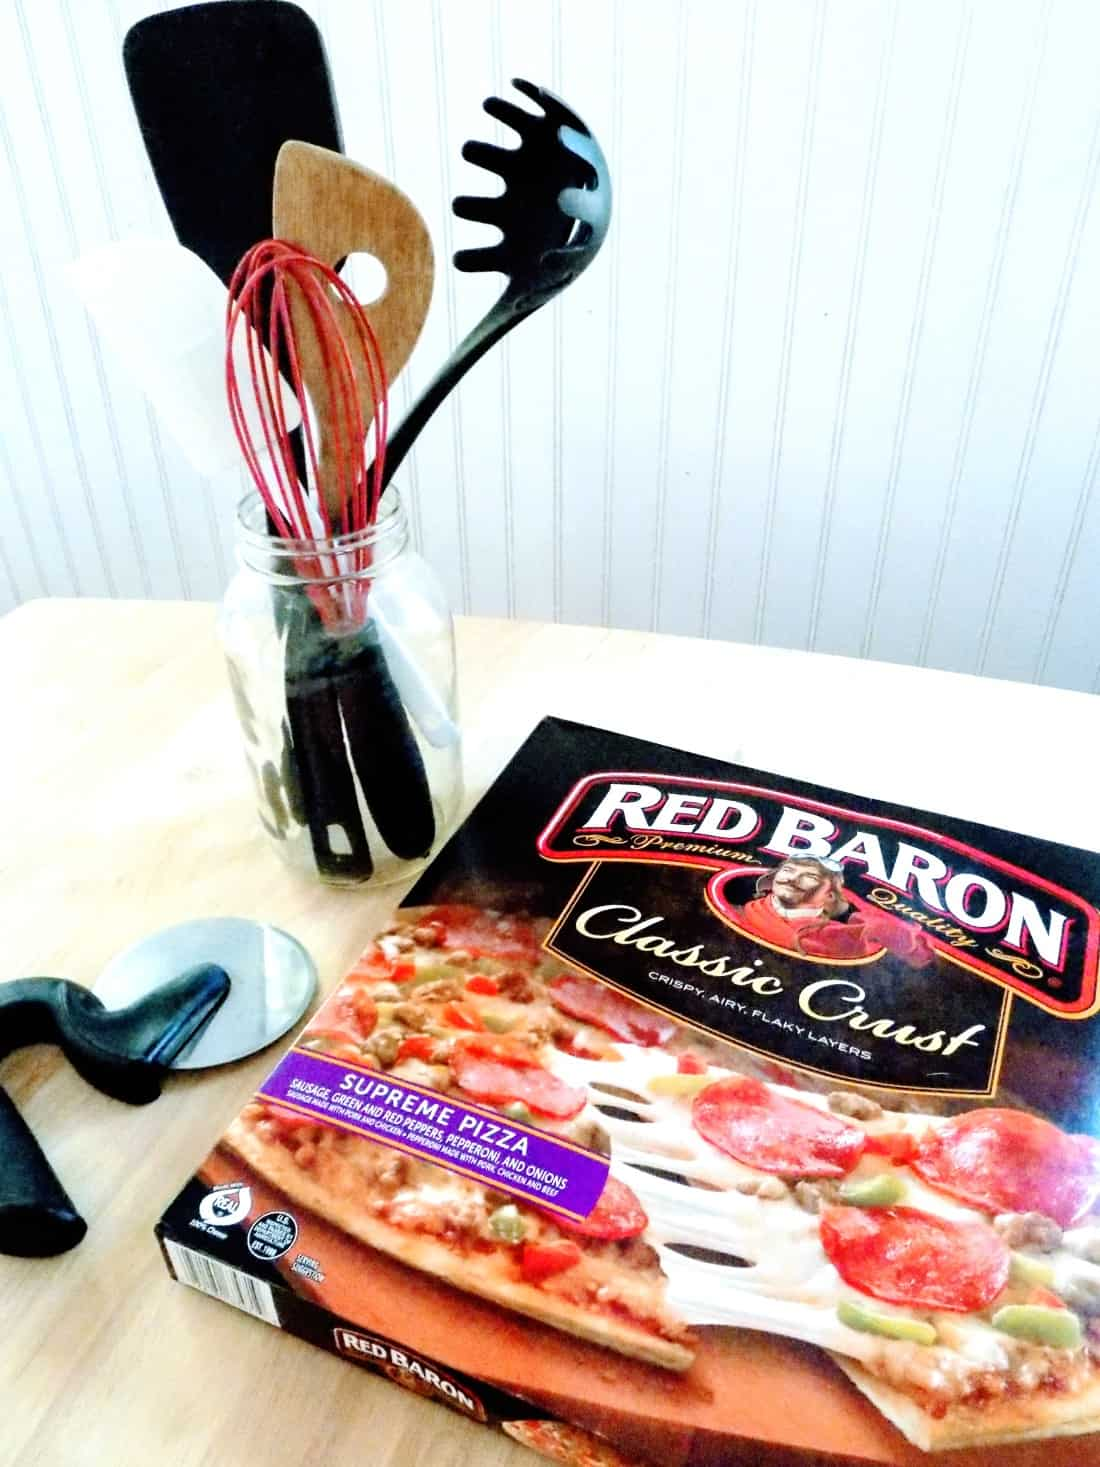 Box of Red Baron pizza on counter.